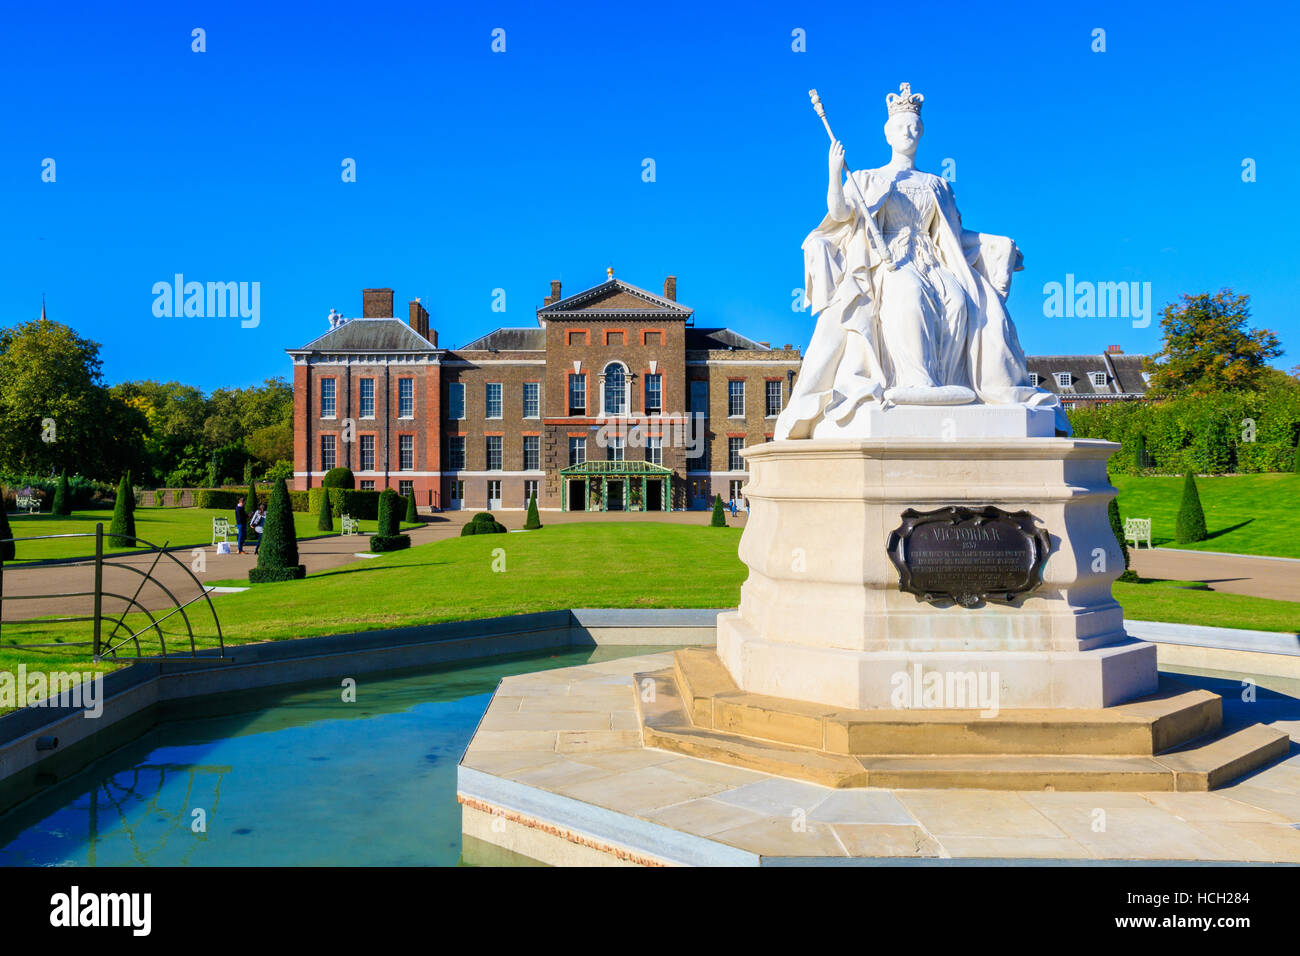 Queen Victoria statue and Kensington Palace in London - Stock Image